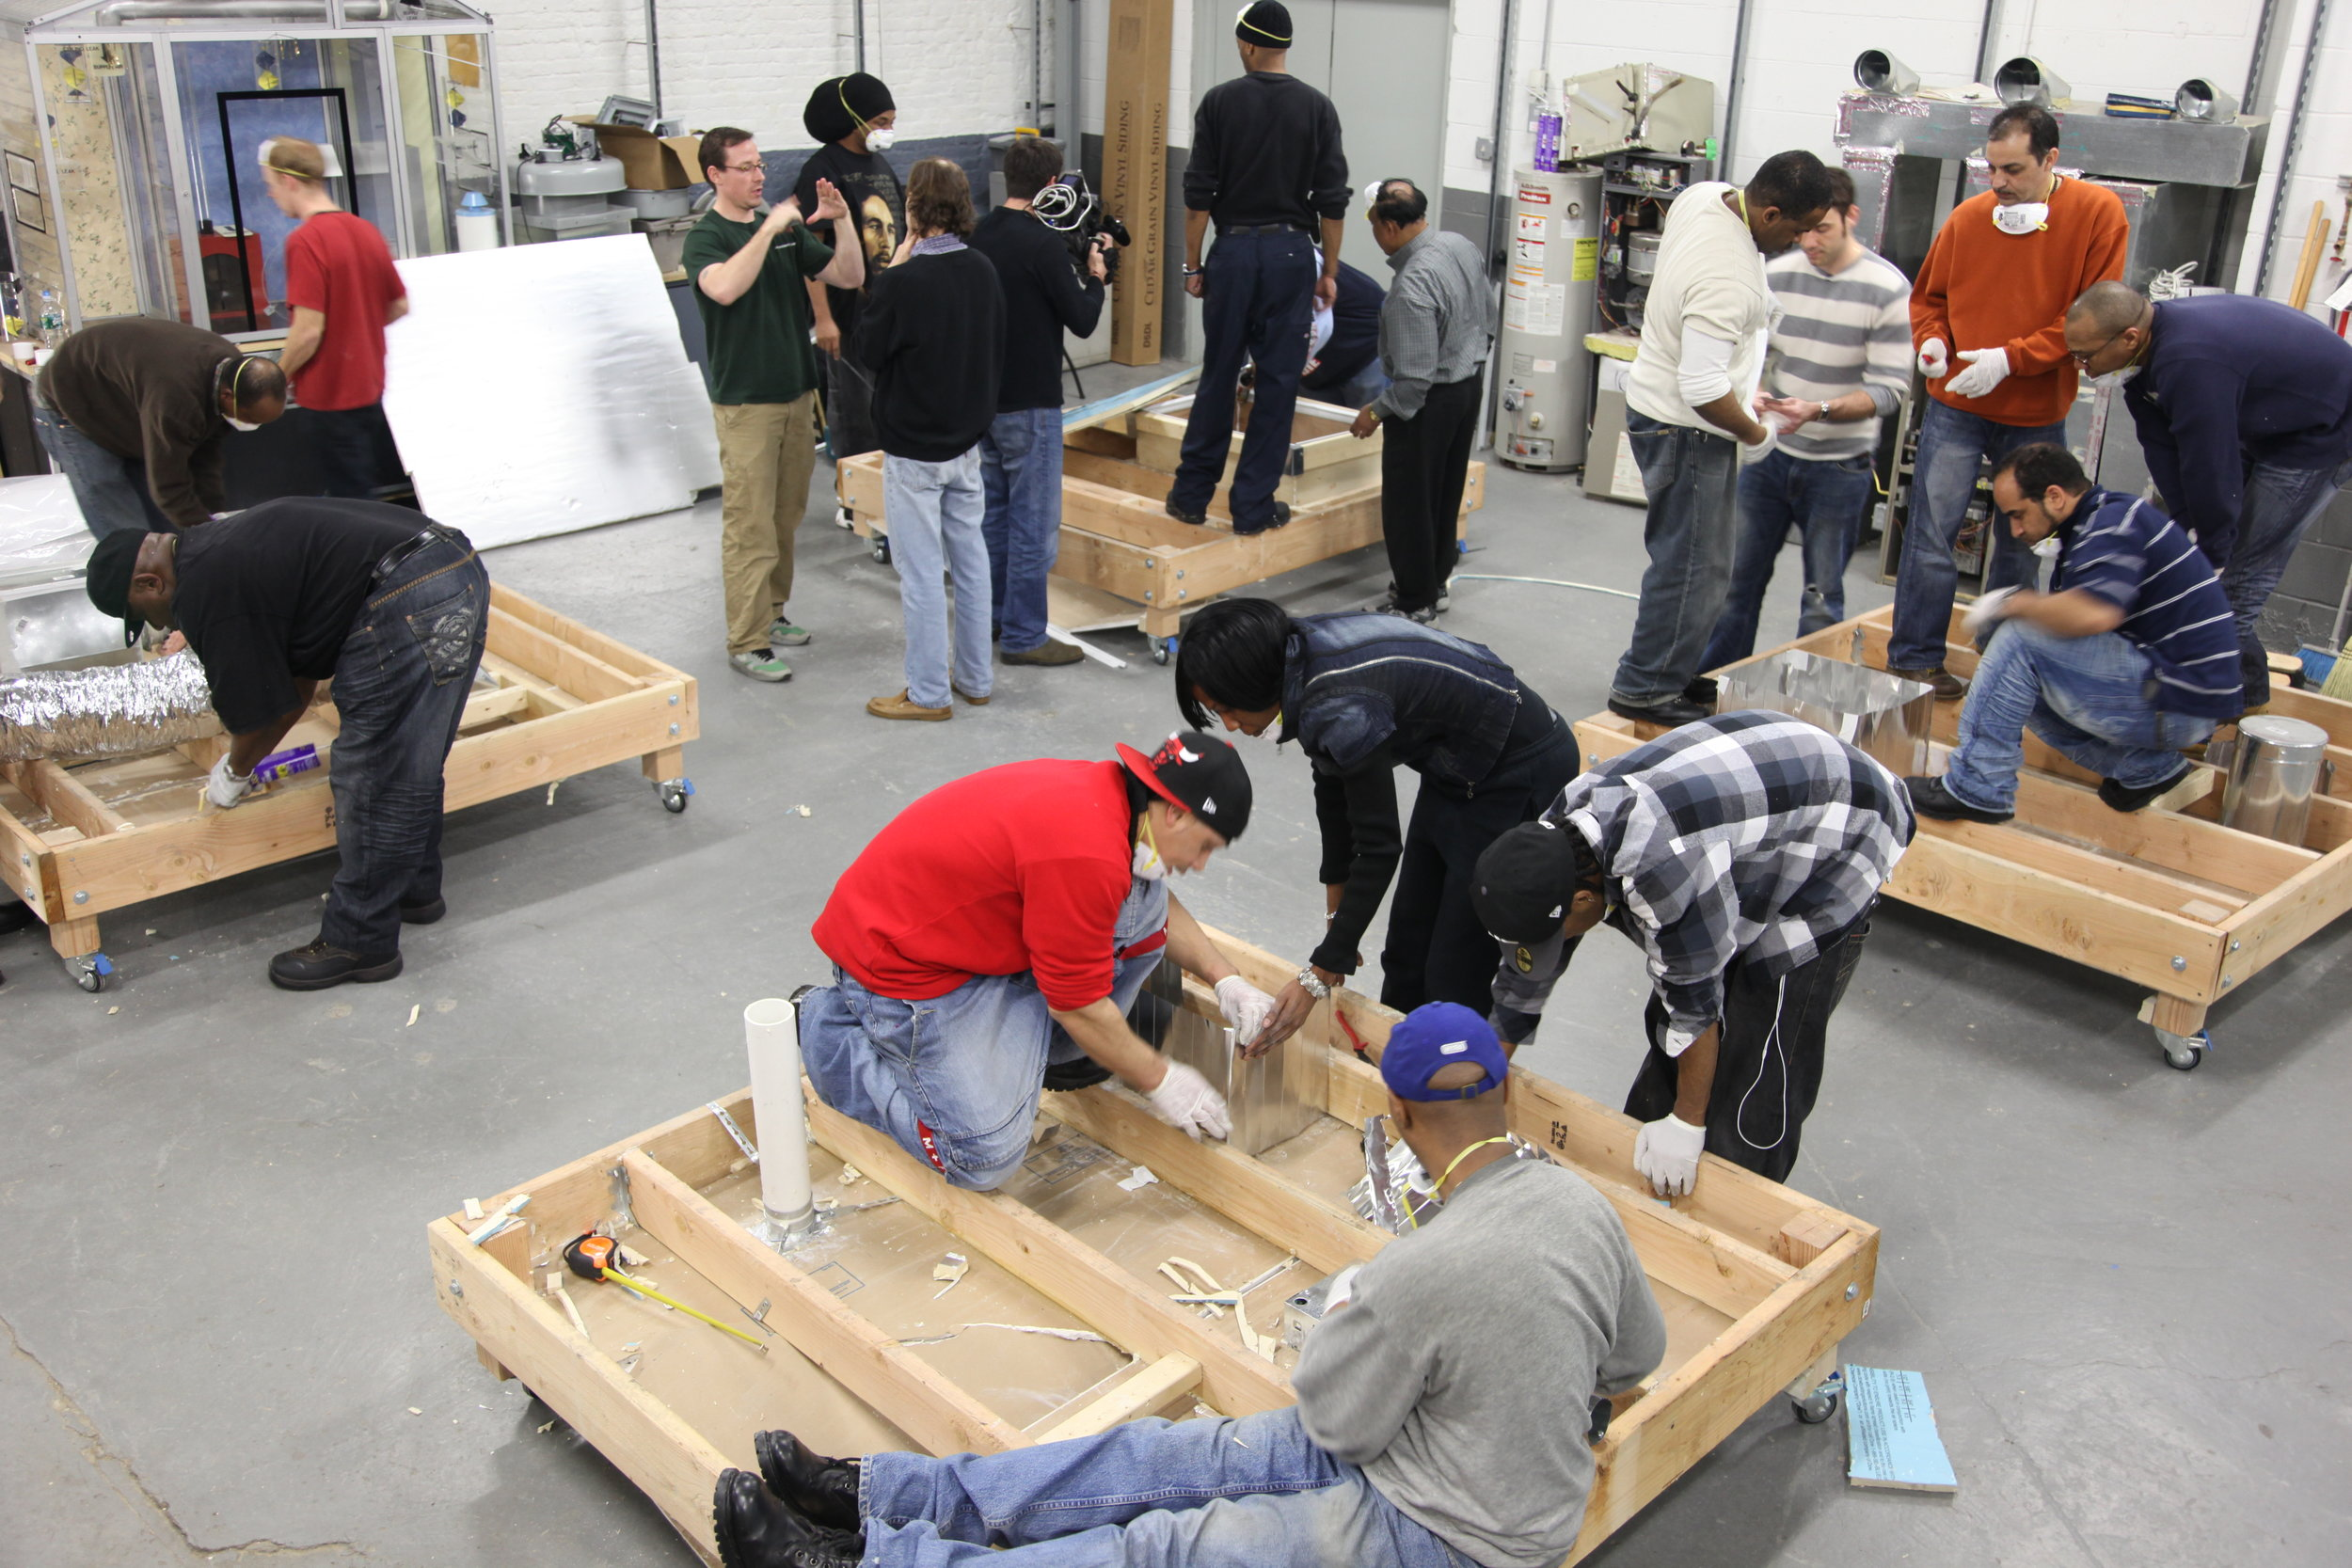 Hands-on lab with attic replicas where trainees practice insulating ducts and pipes.